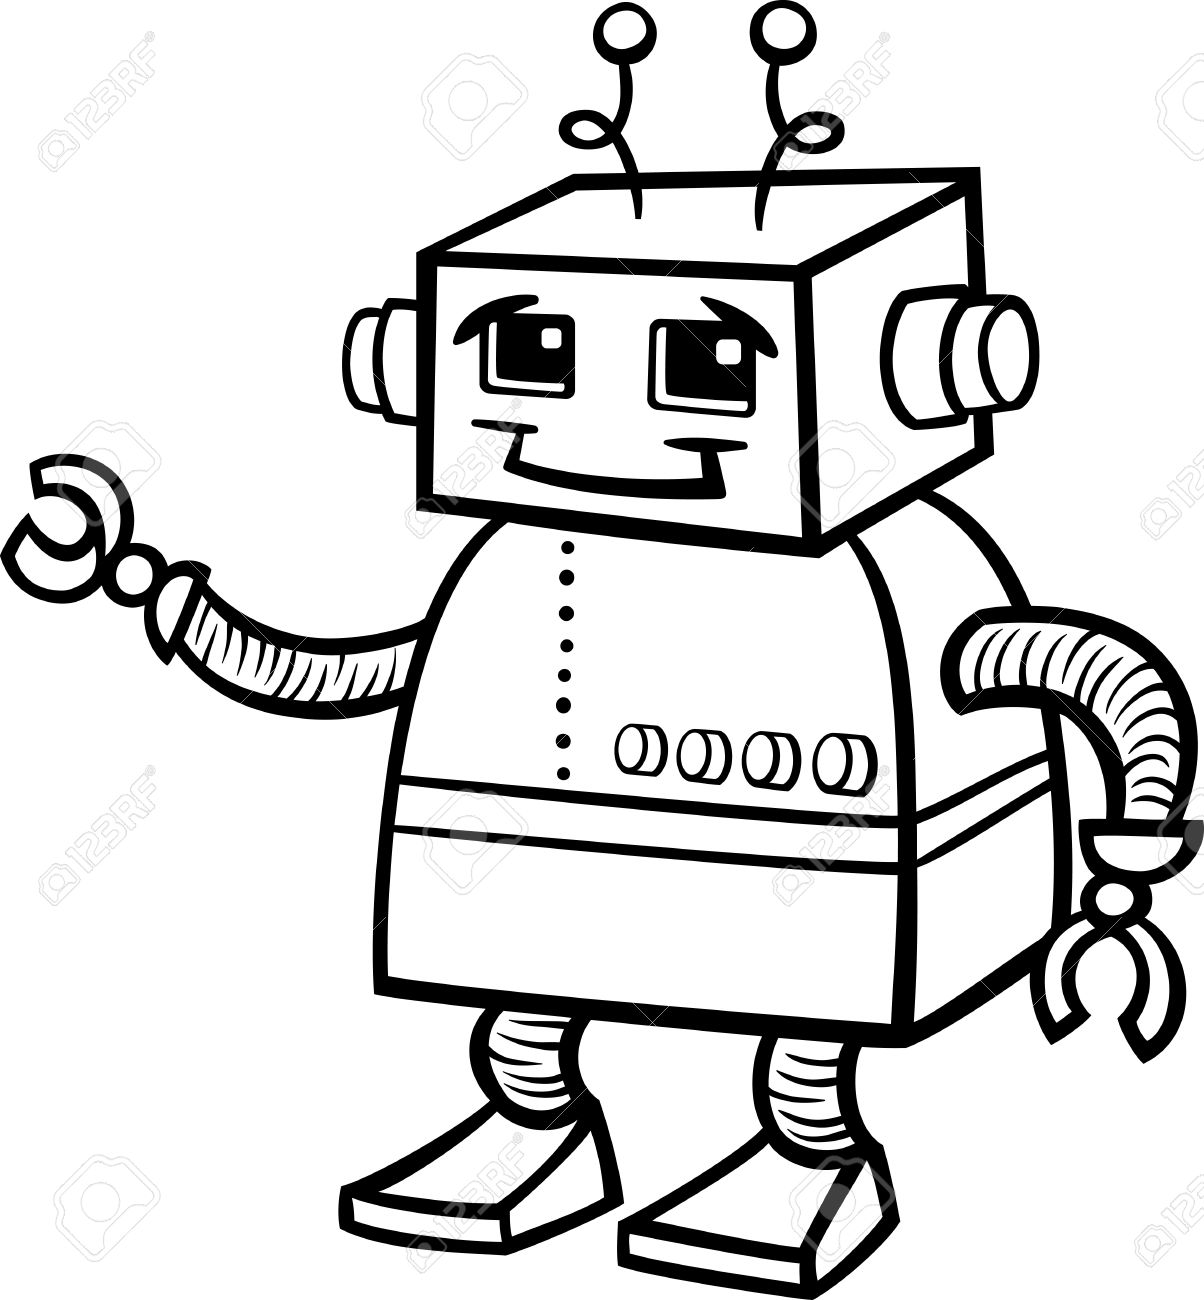 Black and White Cartoon of Cute Robot or Droid for Children to Coloring Book Stock Vector - 21822660